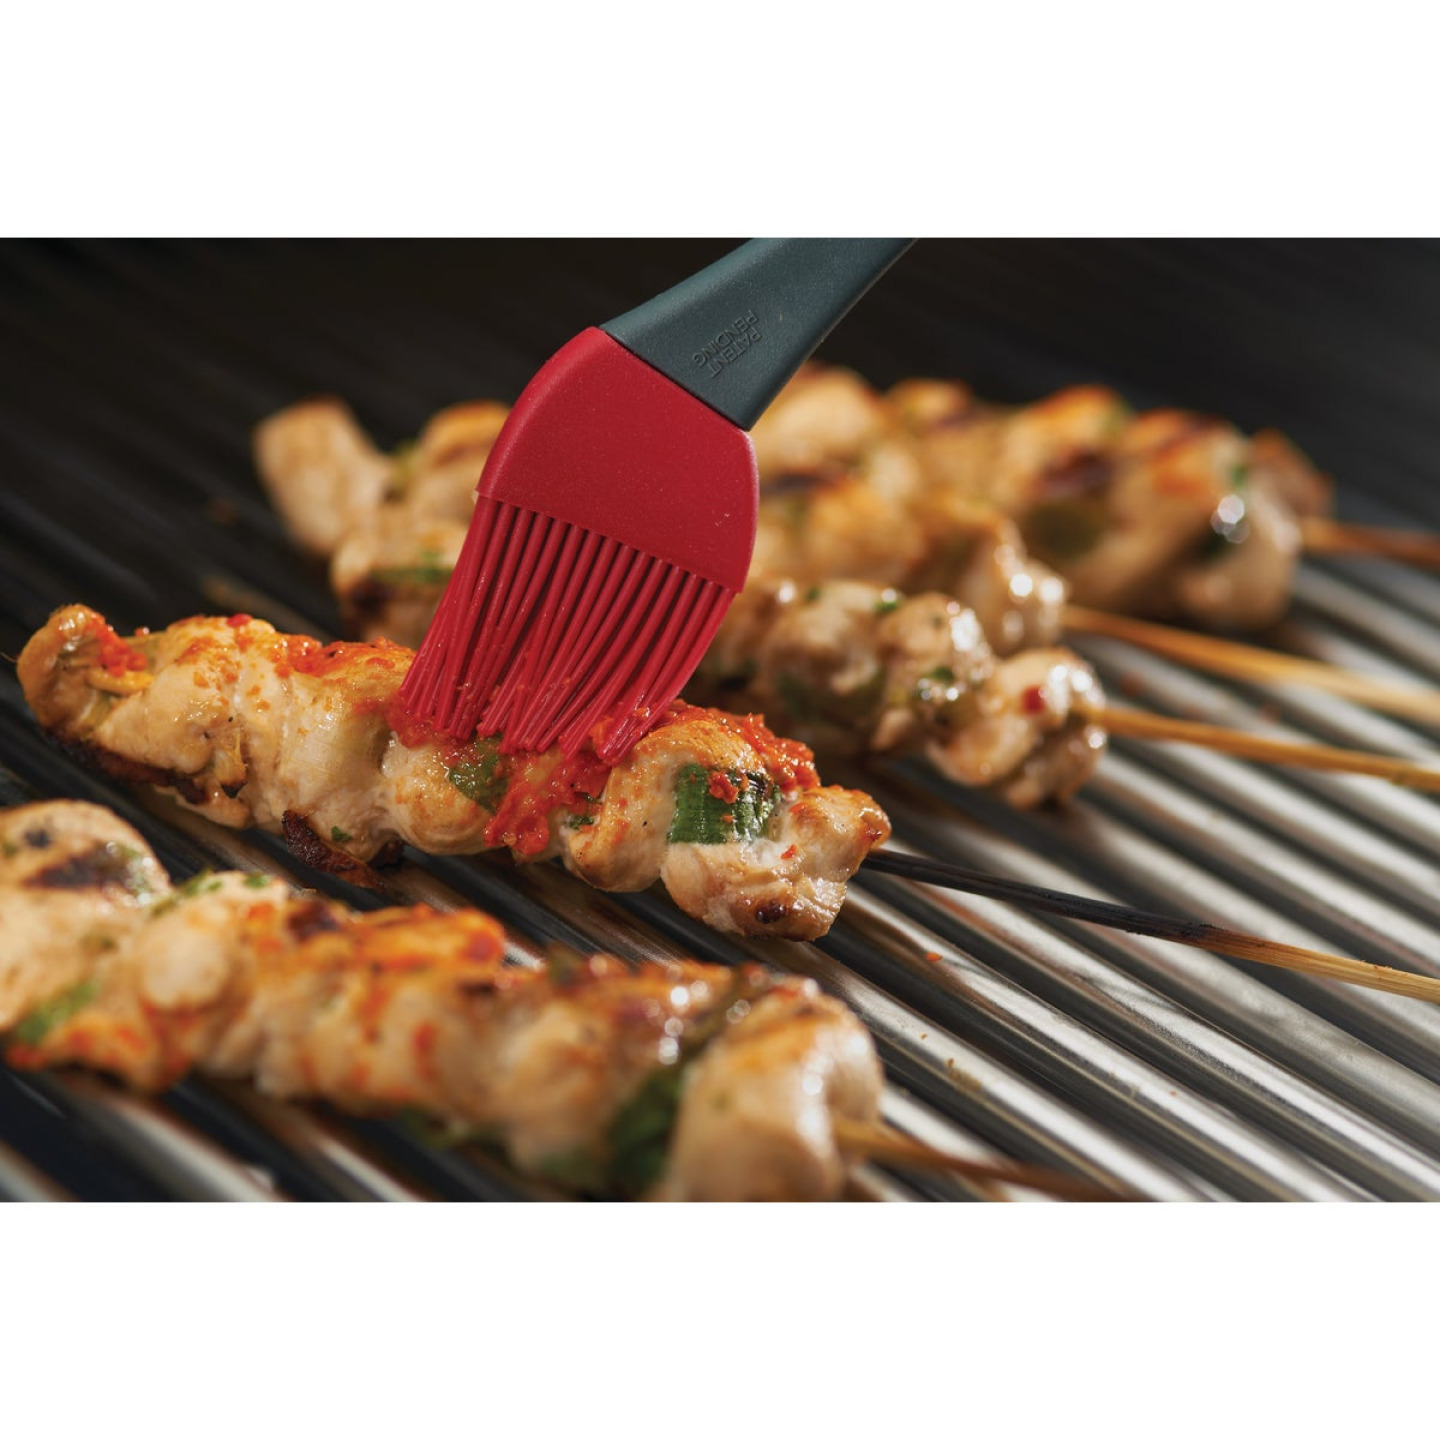 GrillPro 12 In. Bamboo Skewer (100-Pack) Image 2